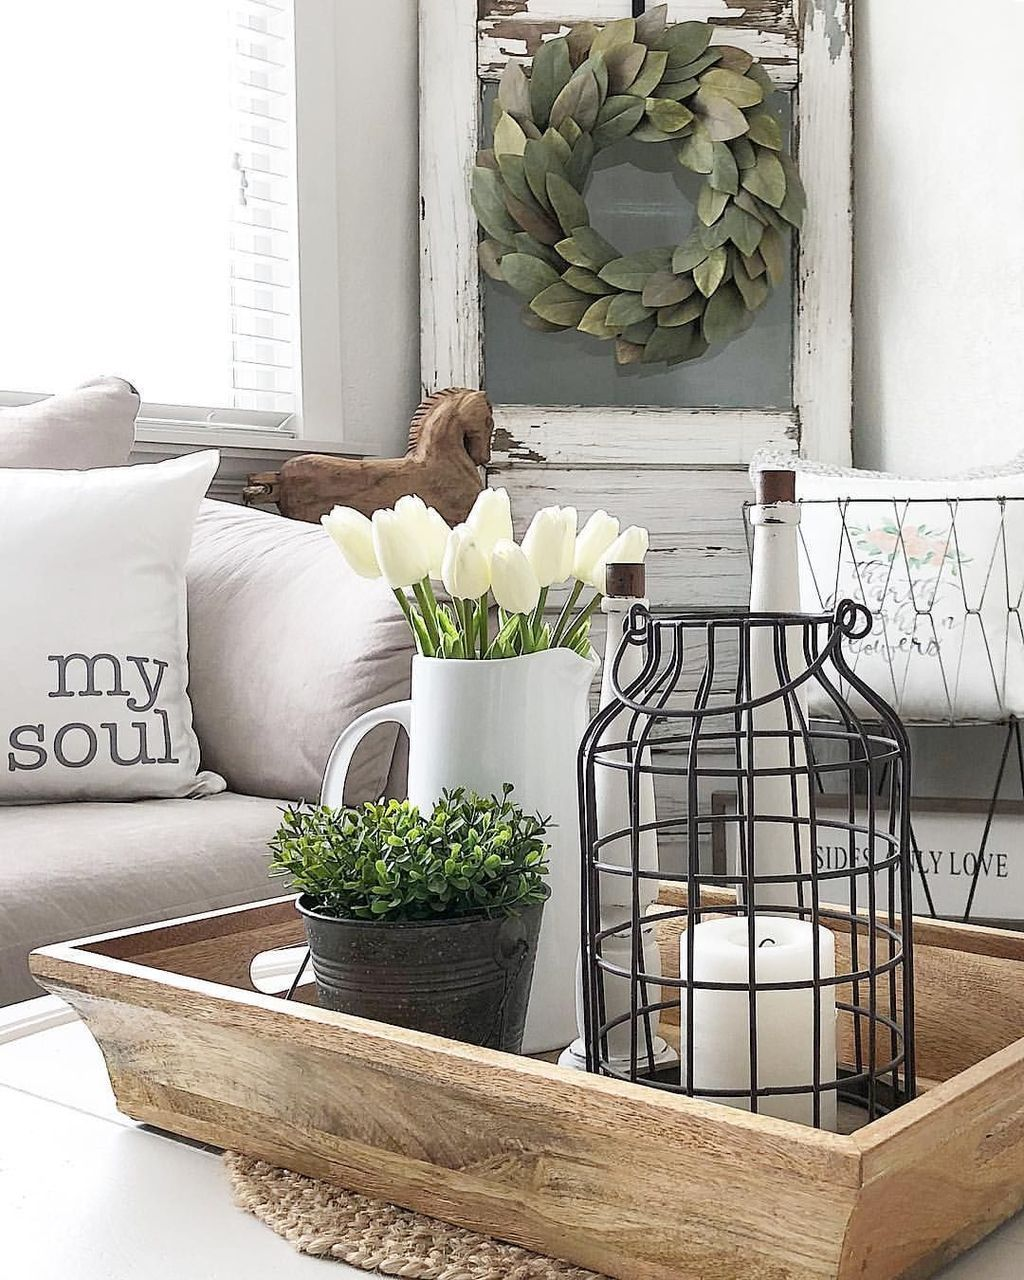 36 Charming Farmhouse Living Room Decoration Ideas For Home images